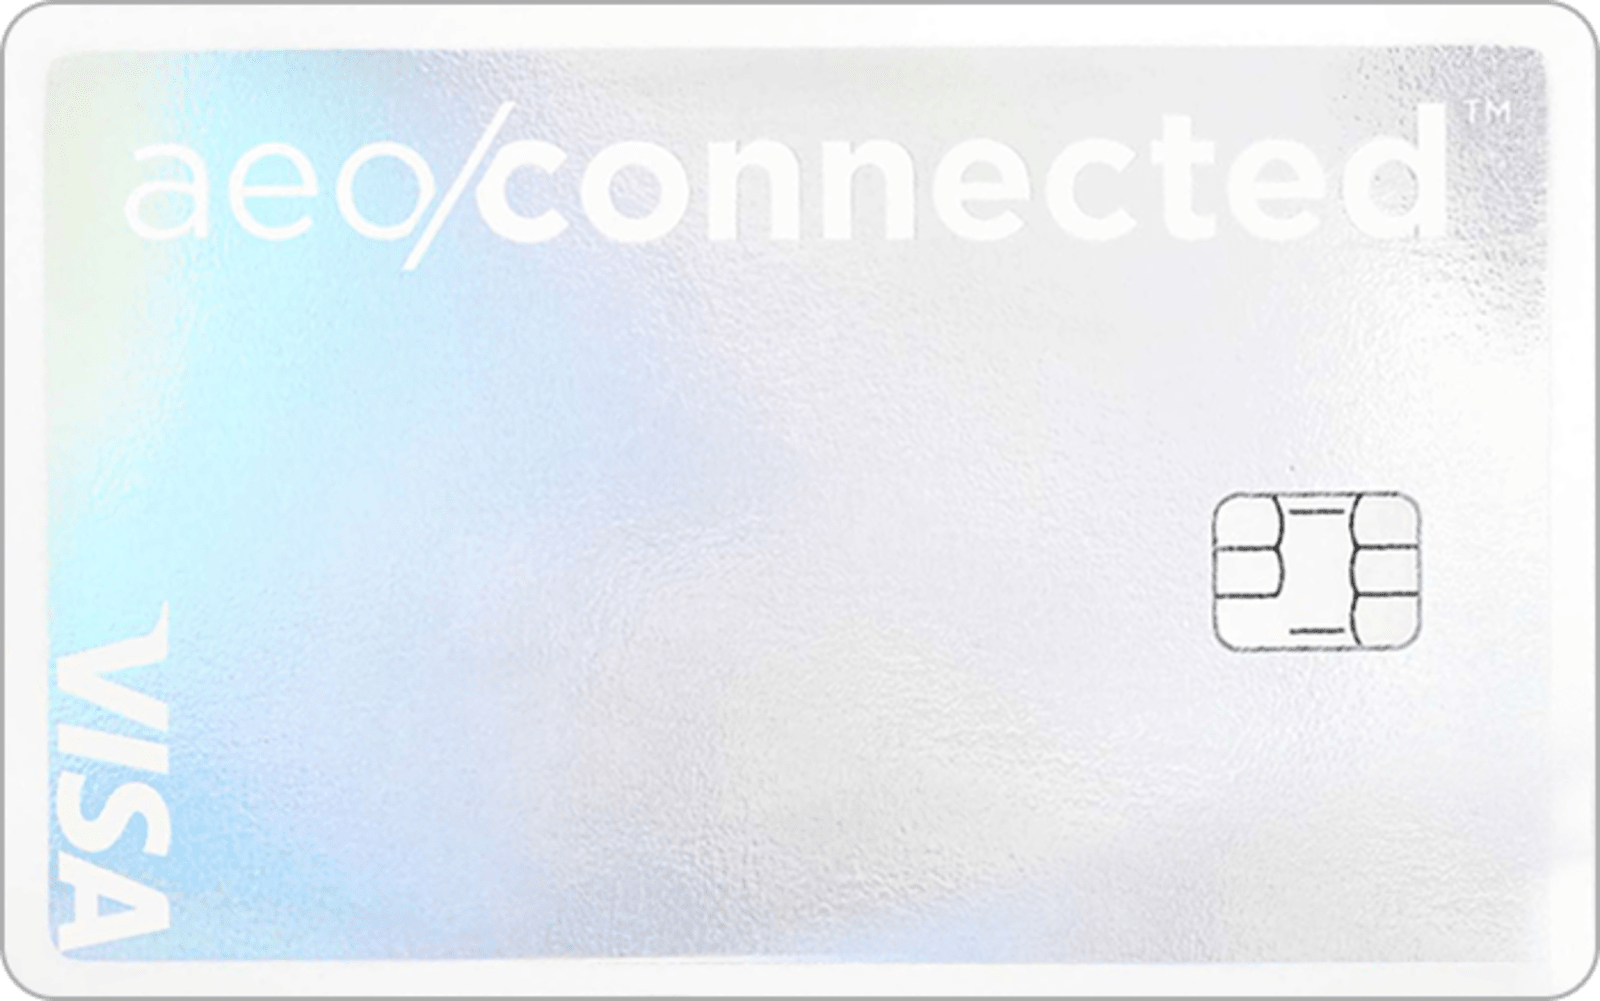 American Eagle Credit Card Sign In >> American Eagle Outfitters Connected Visa Credit Card Is It A Must